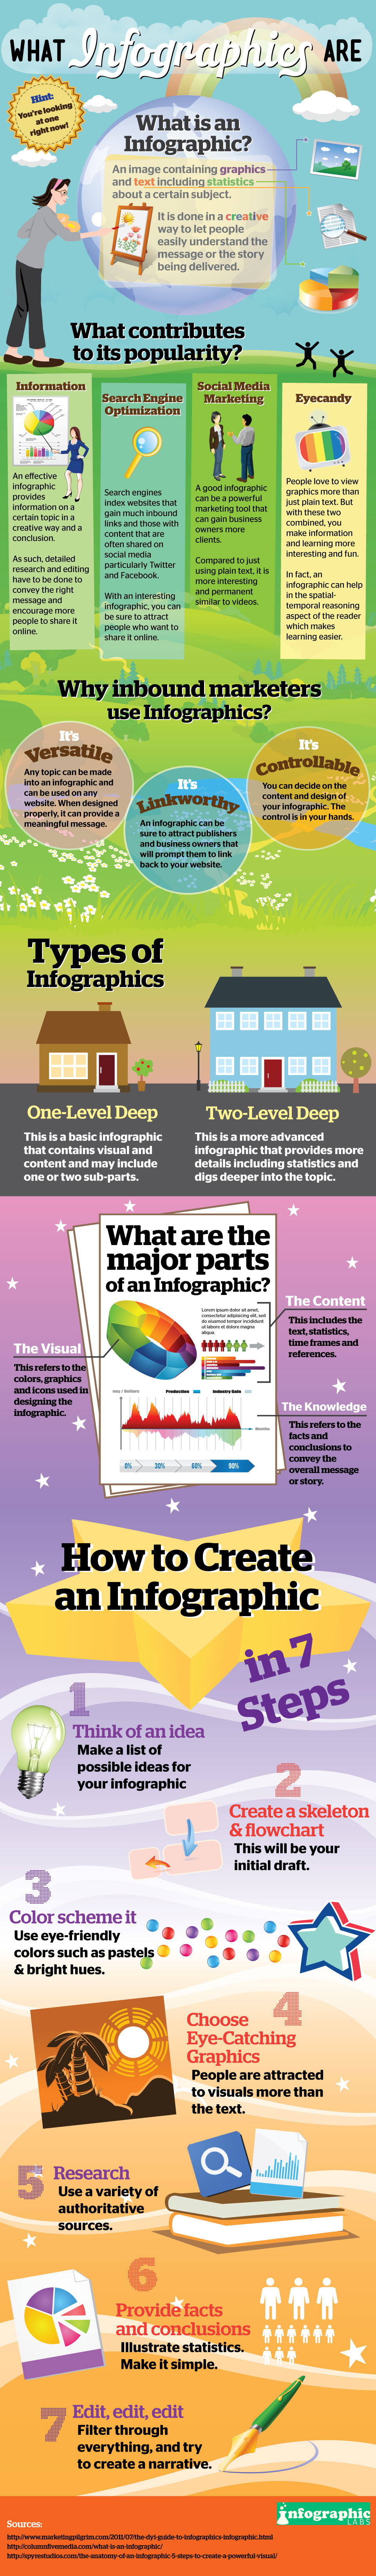 what-is-an-infographic_IGL